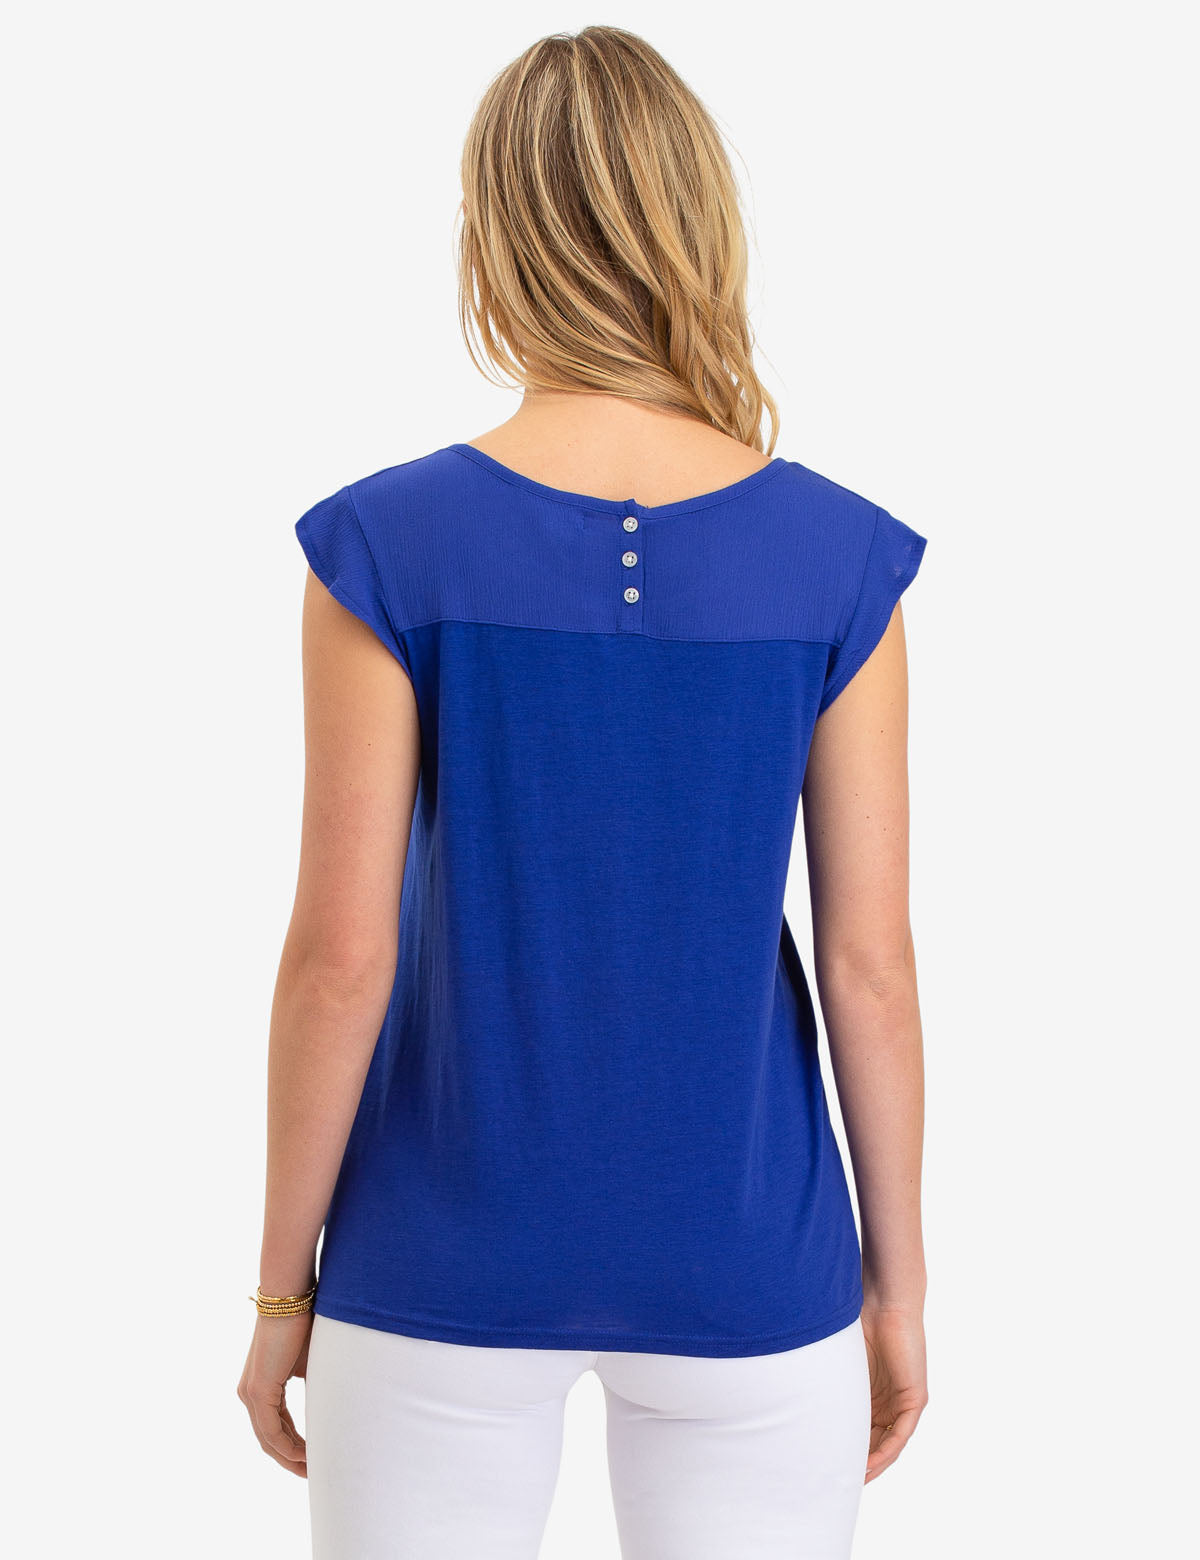 CHIFFON RUFFLE TOP - U.S. Polo Assn.